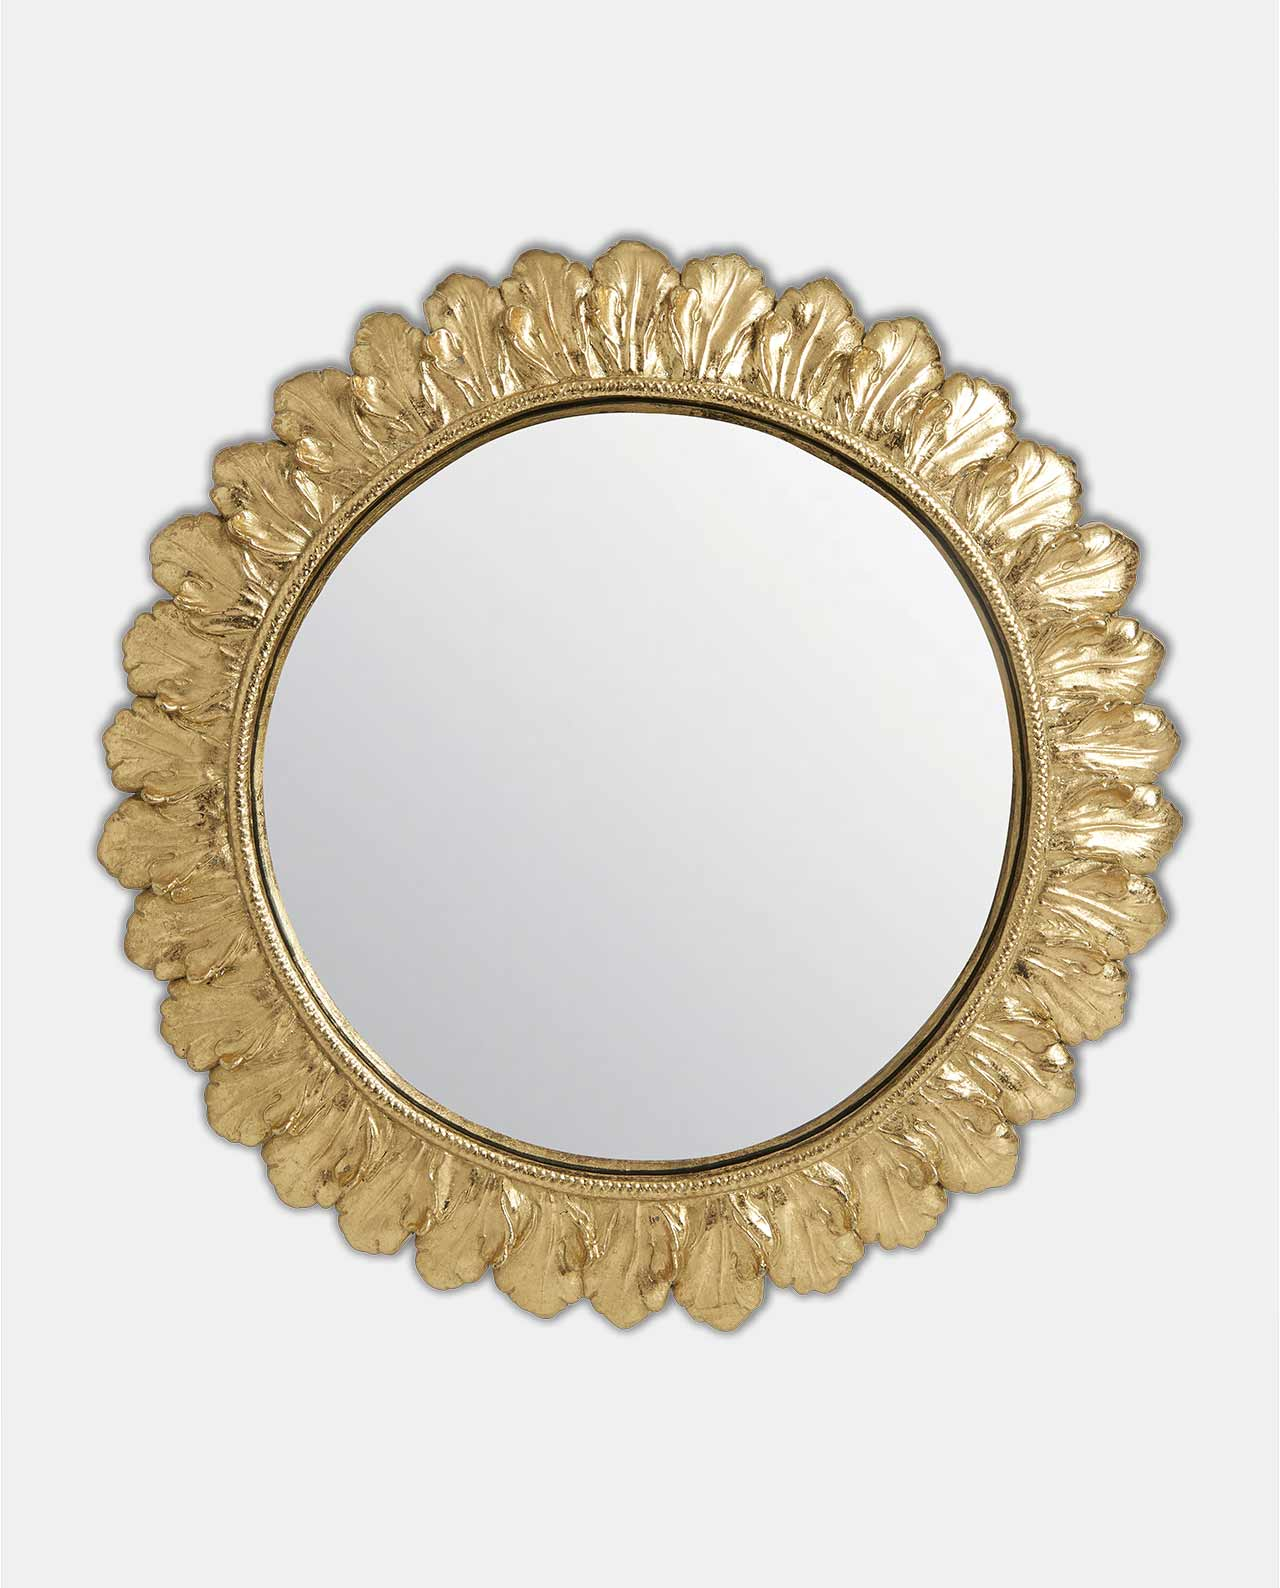 Gold Round Floral Style Convex Mirror 27cm